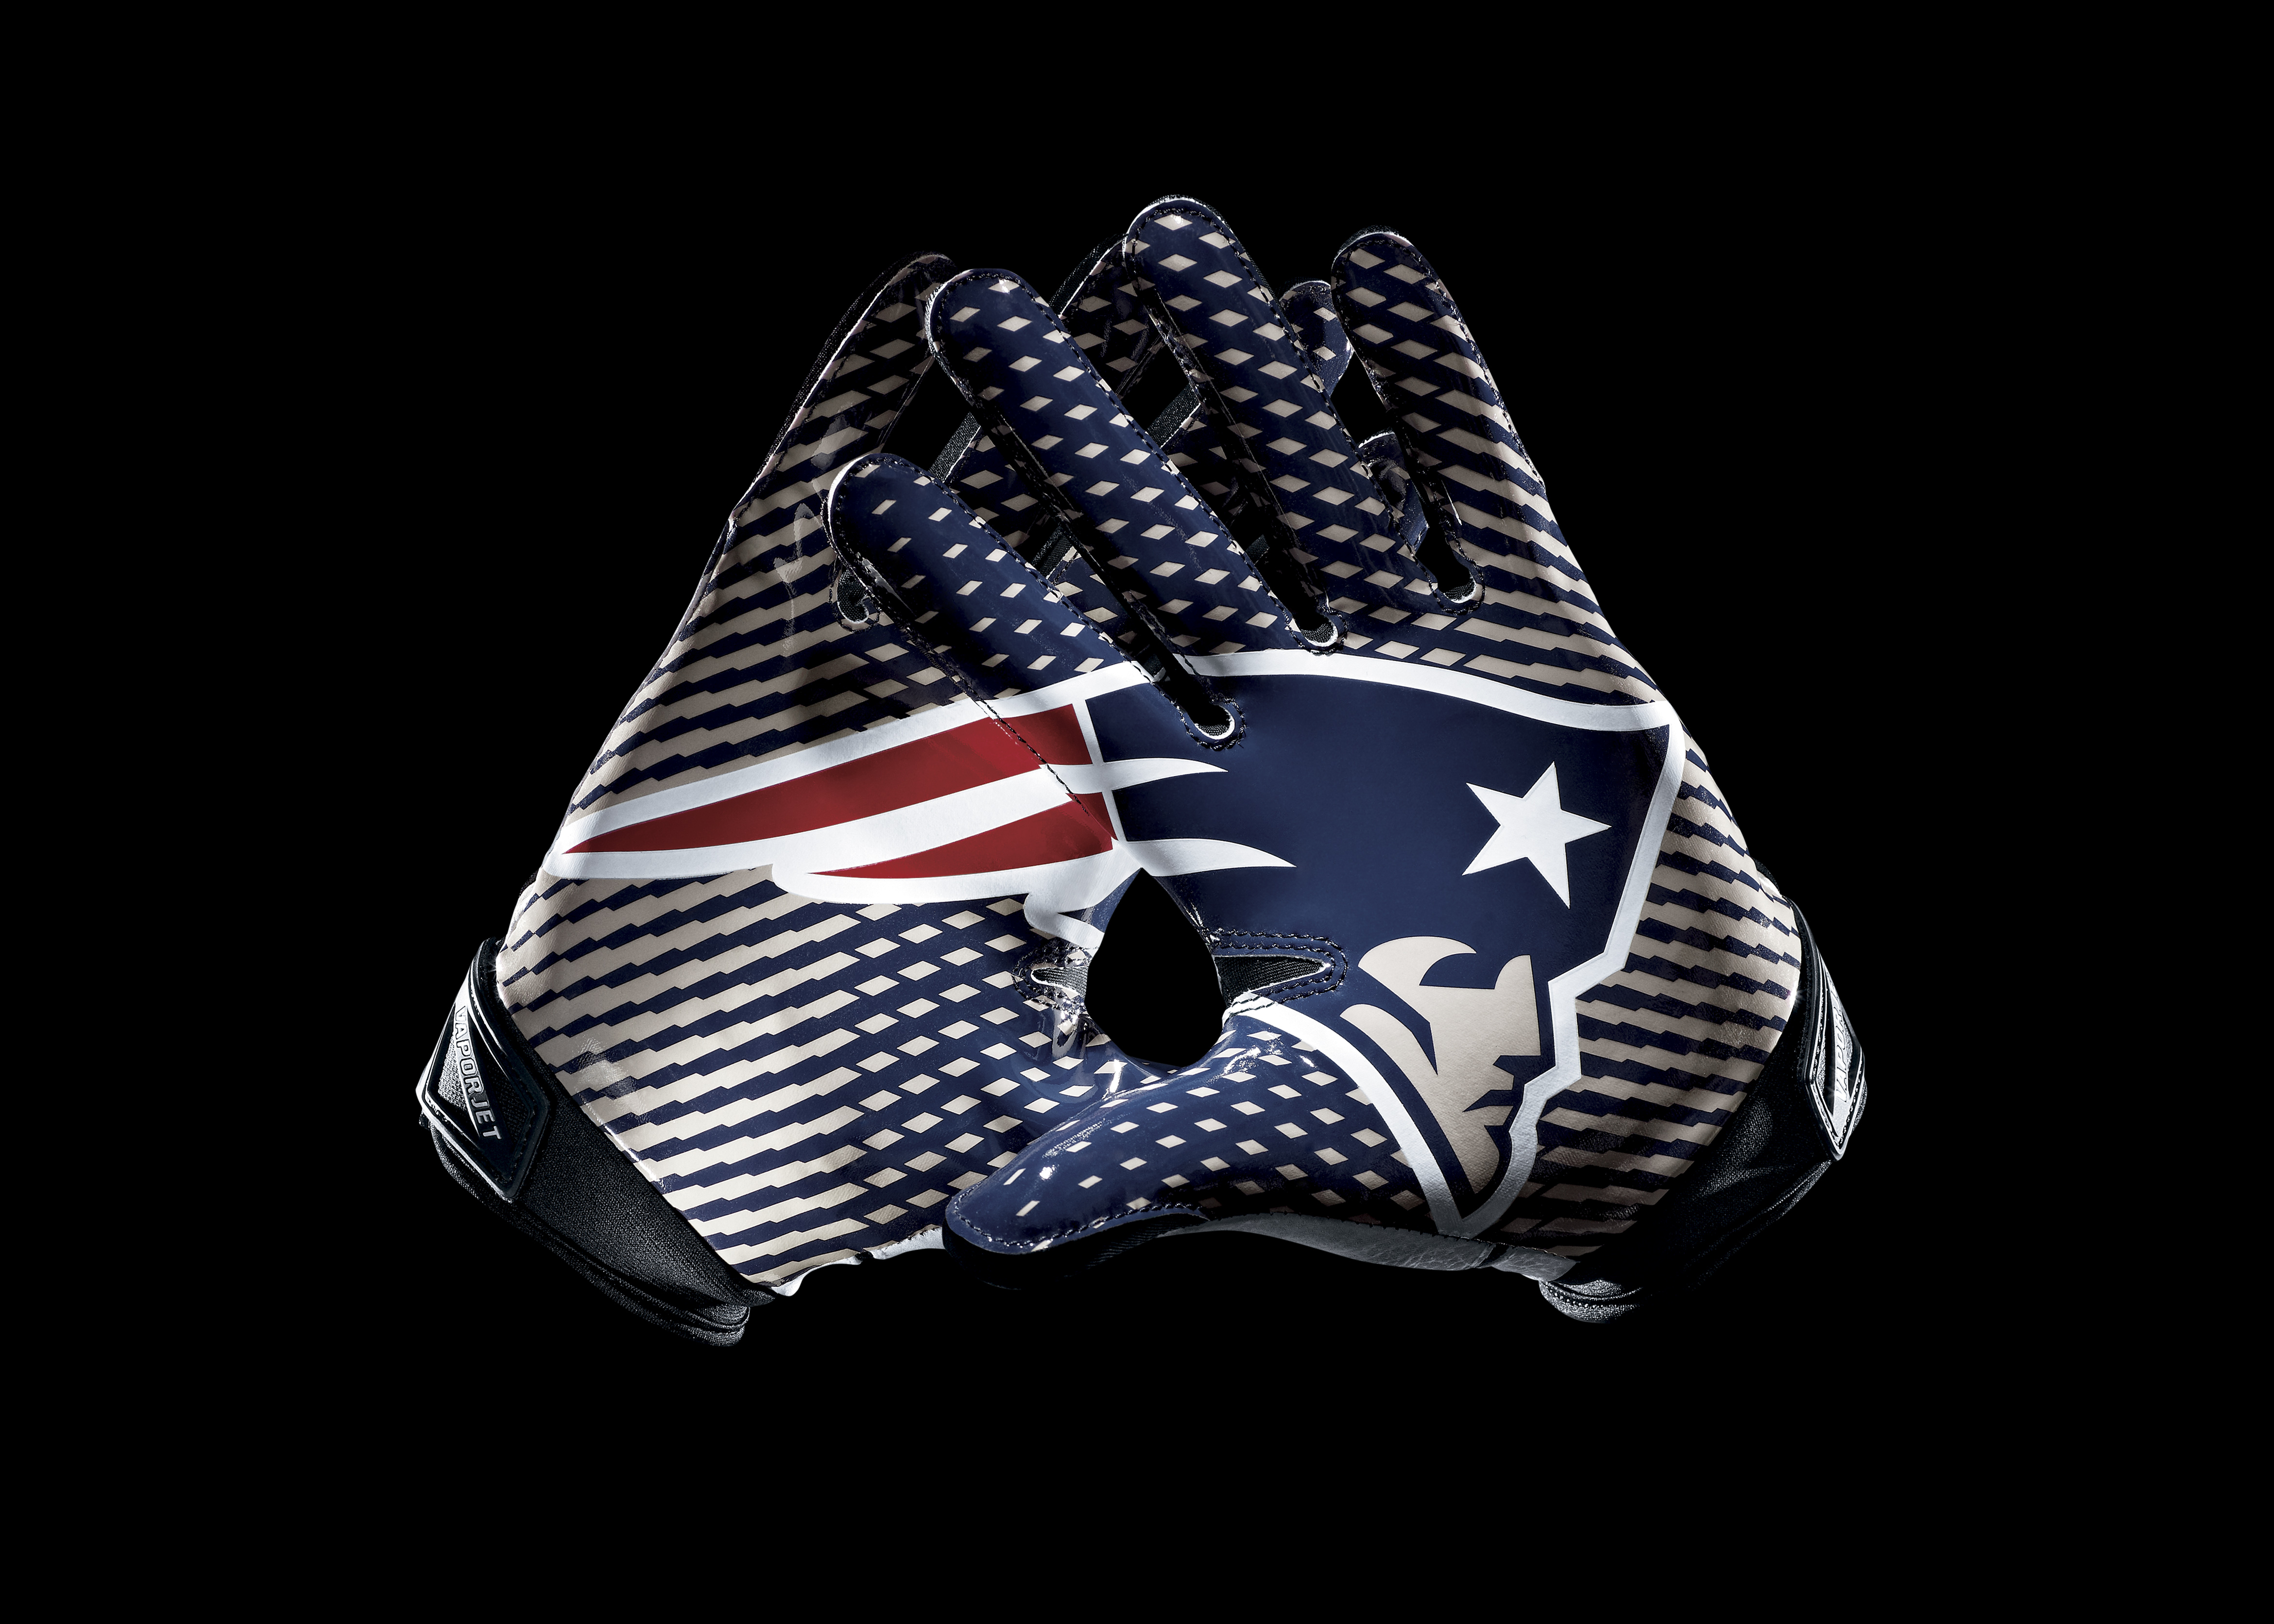 Nike News - New England Patriots 2012 Nike Football Uniform